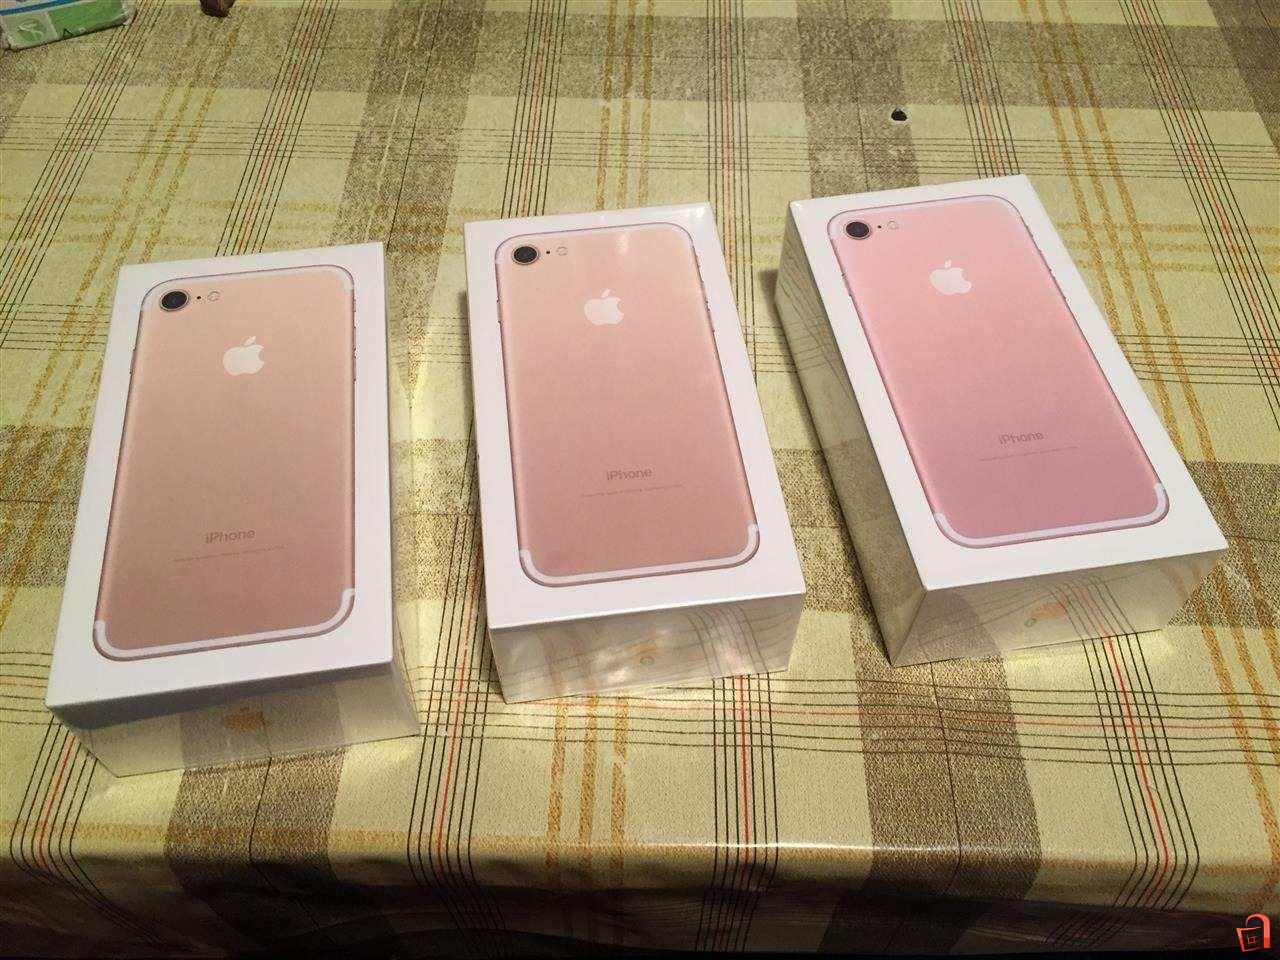 Ad Iphone 7 Gold 128gb For Sale Tetovo Iphone7 Electronics Mobile Phones Apple 2486121